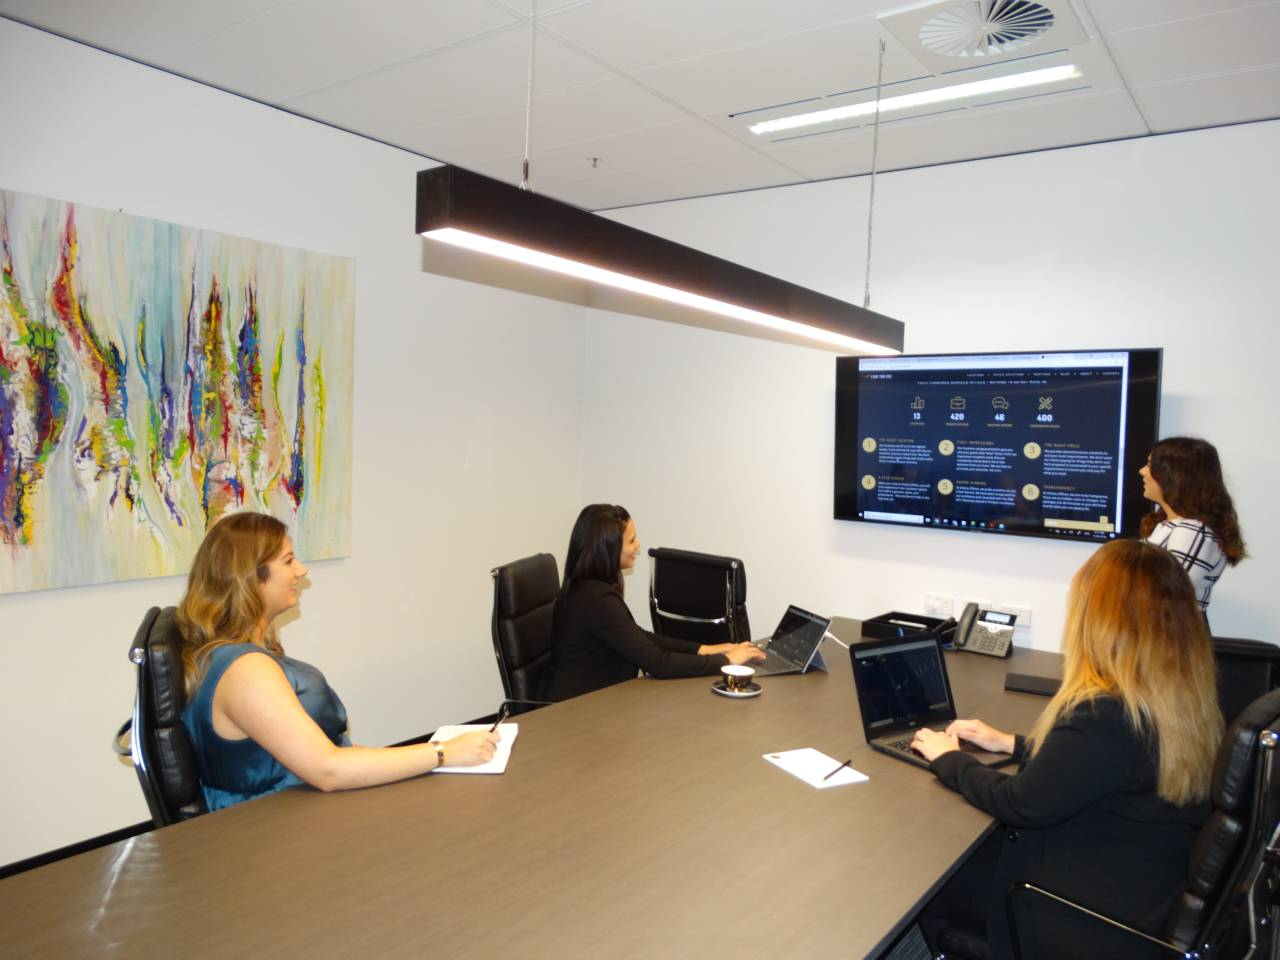 Training Session Being Carried Out In A Meeting Room With A Facilitator And Three Delegates Looking At A Screen